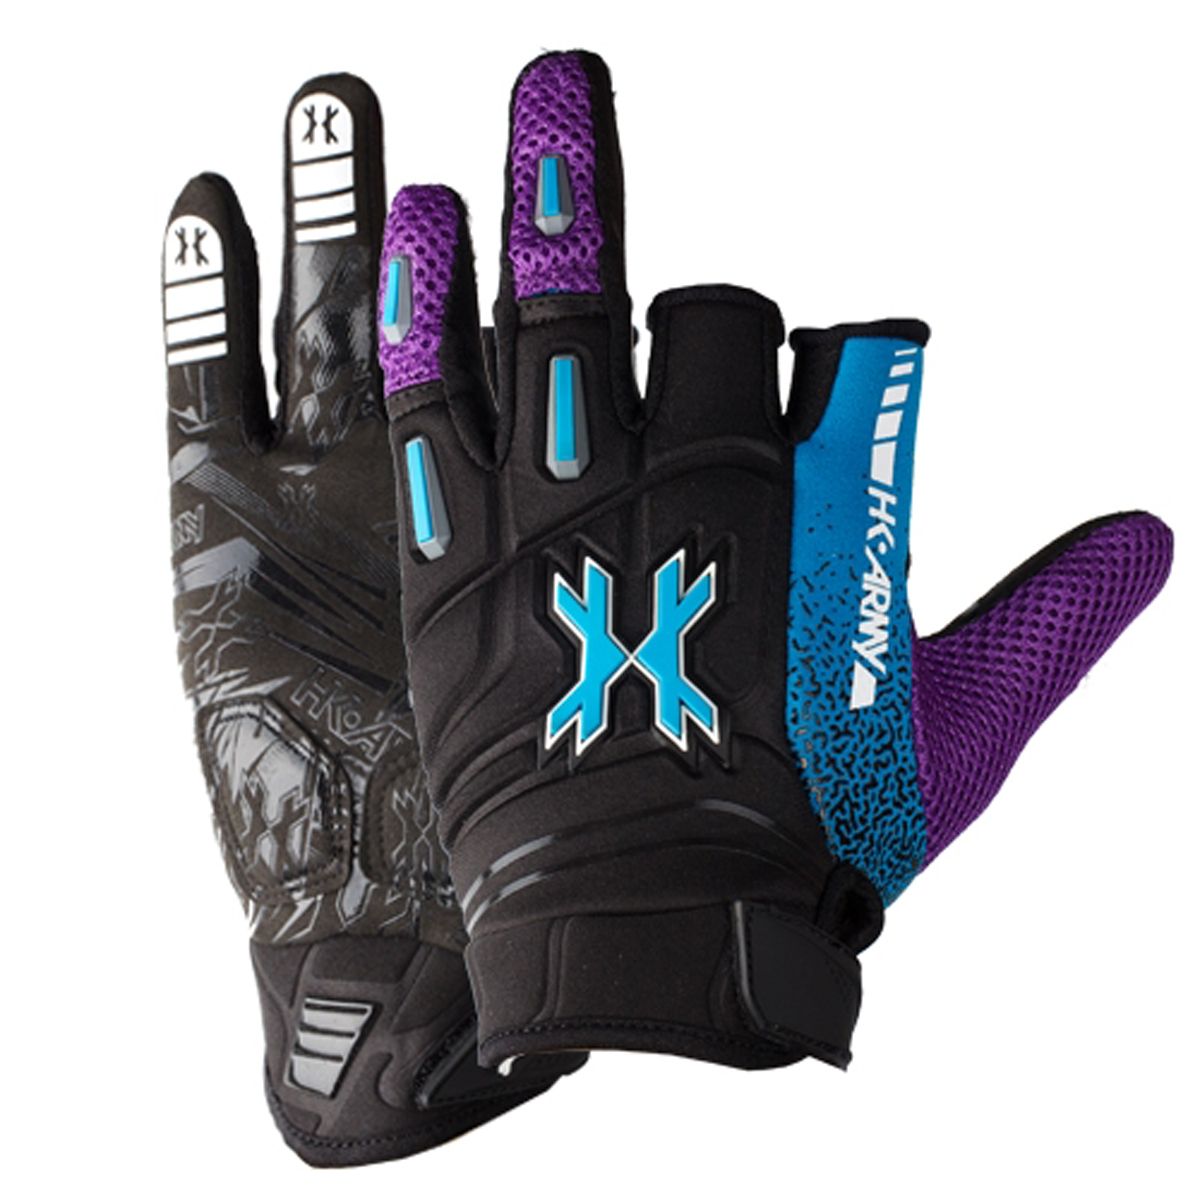 HK Army Paintball Pro Gloves - Arctic